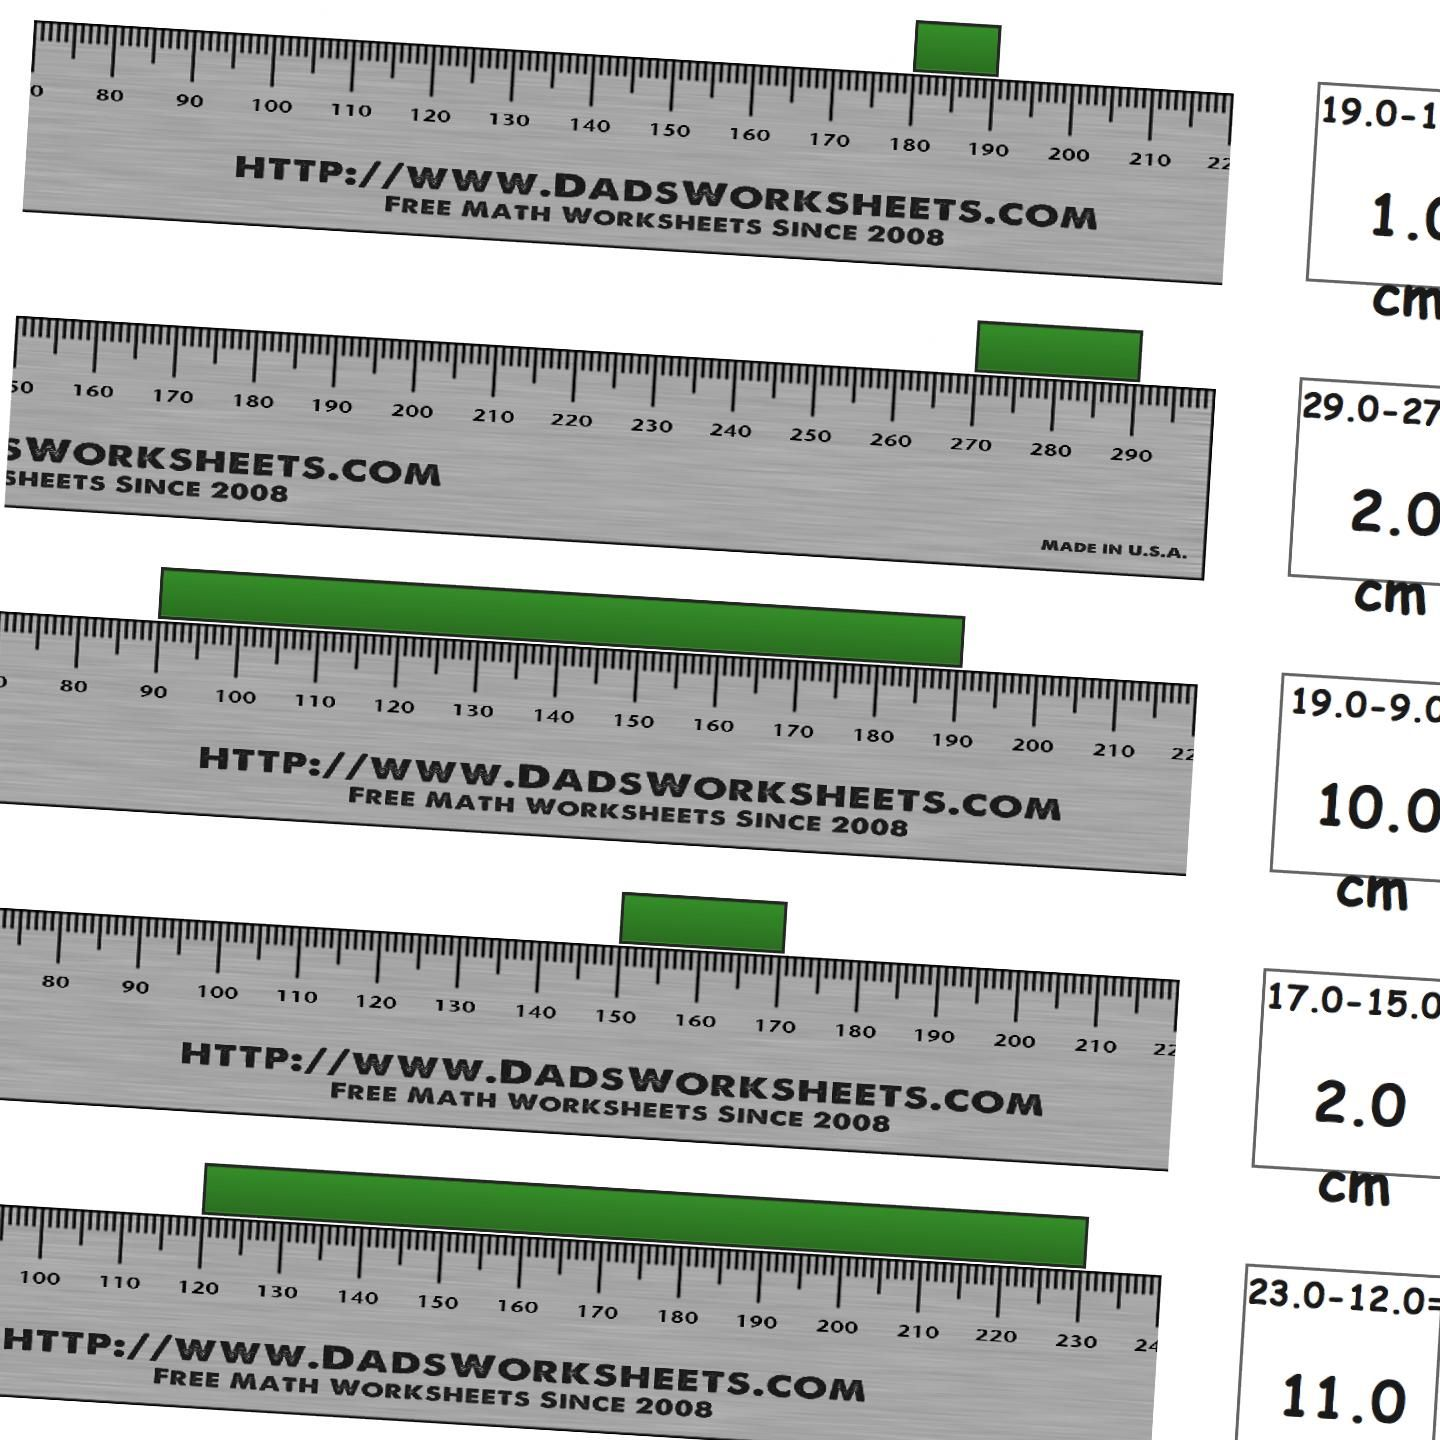 Worksheets For Measuring Length On A Metric Ruler From Whole Centimeters